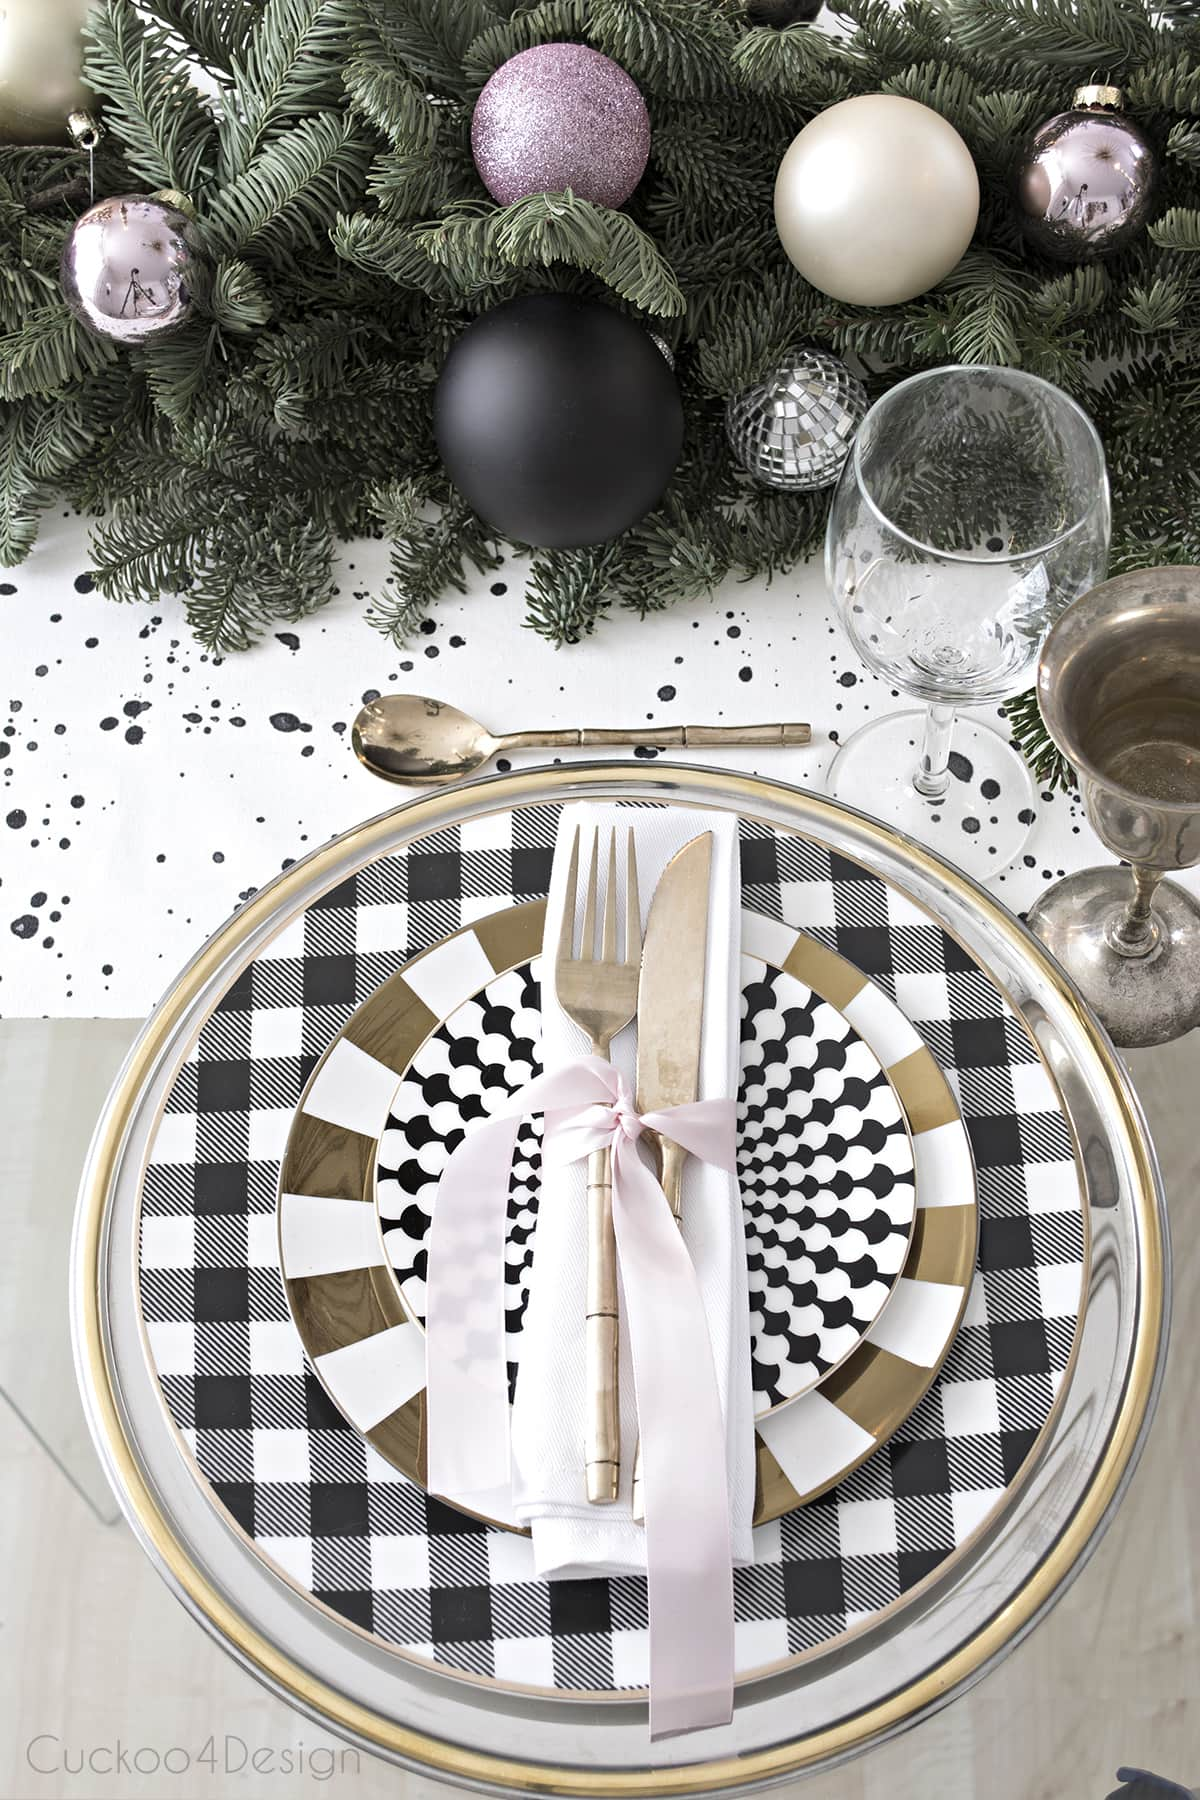 black and white, gold and silver mixed together for a festive table setting